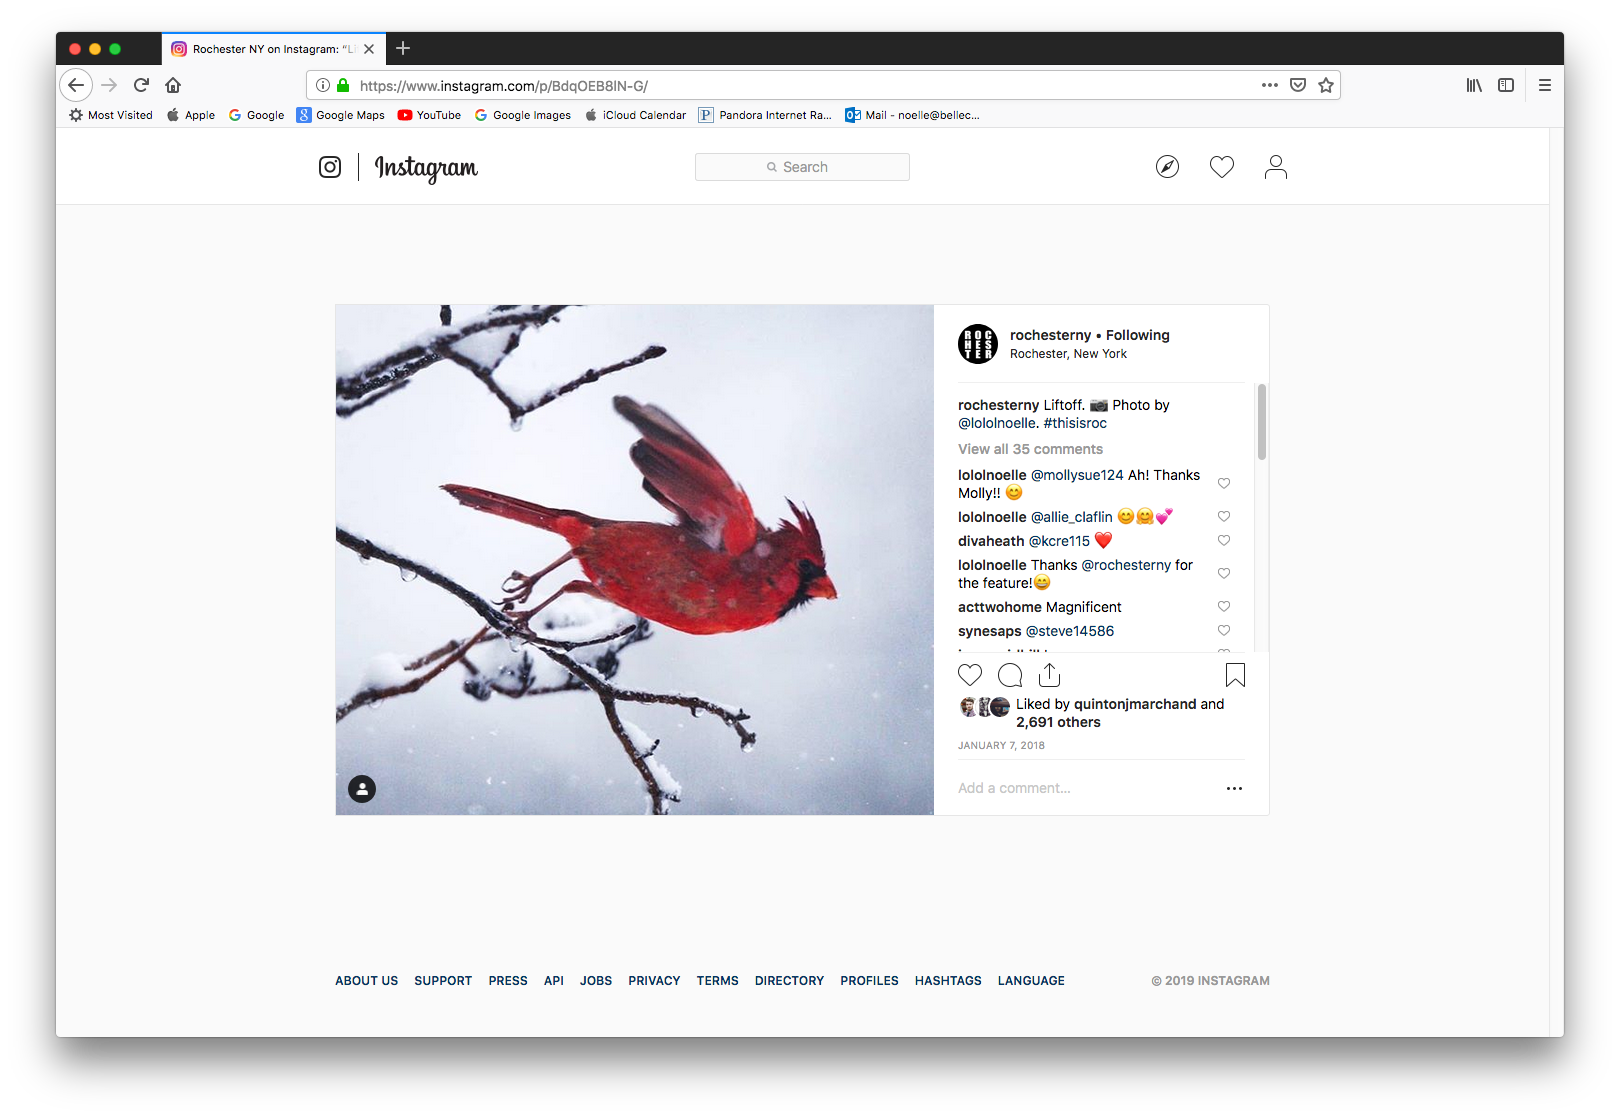 Rochester NY - The Rochester NY Instagram page shared our photo of this cardinal mid-liftoff in January of 2018.